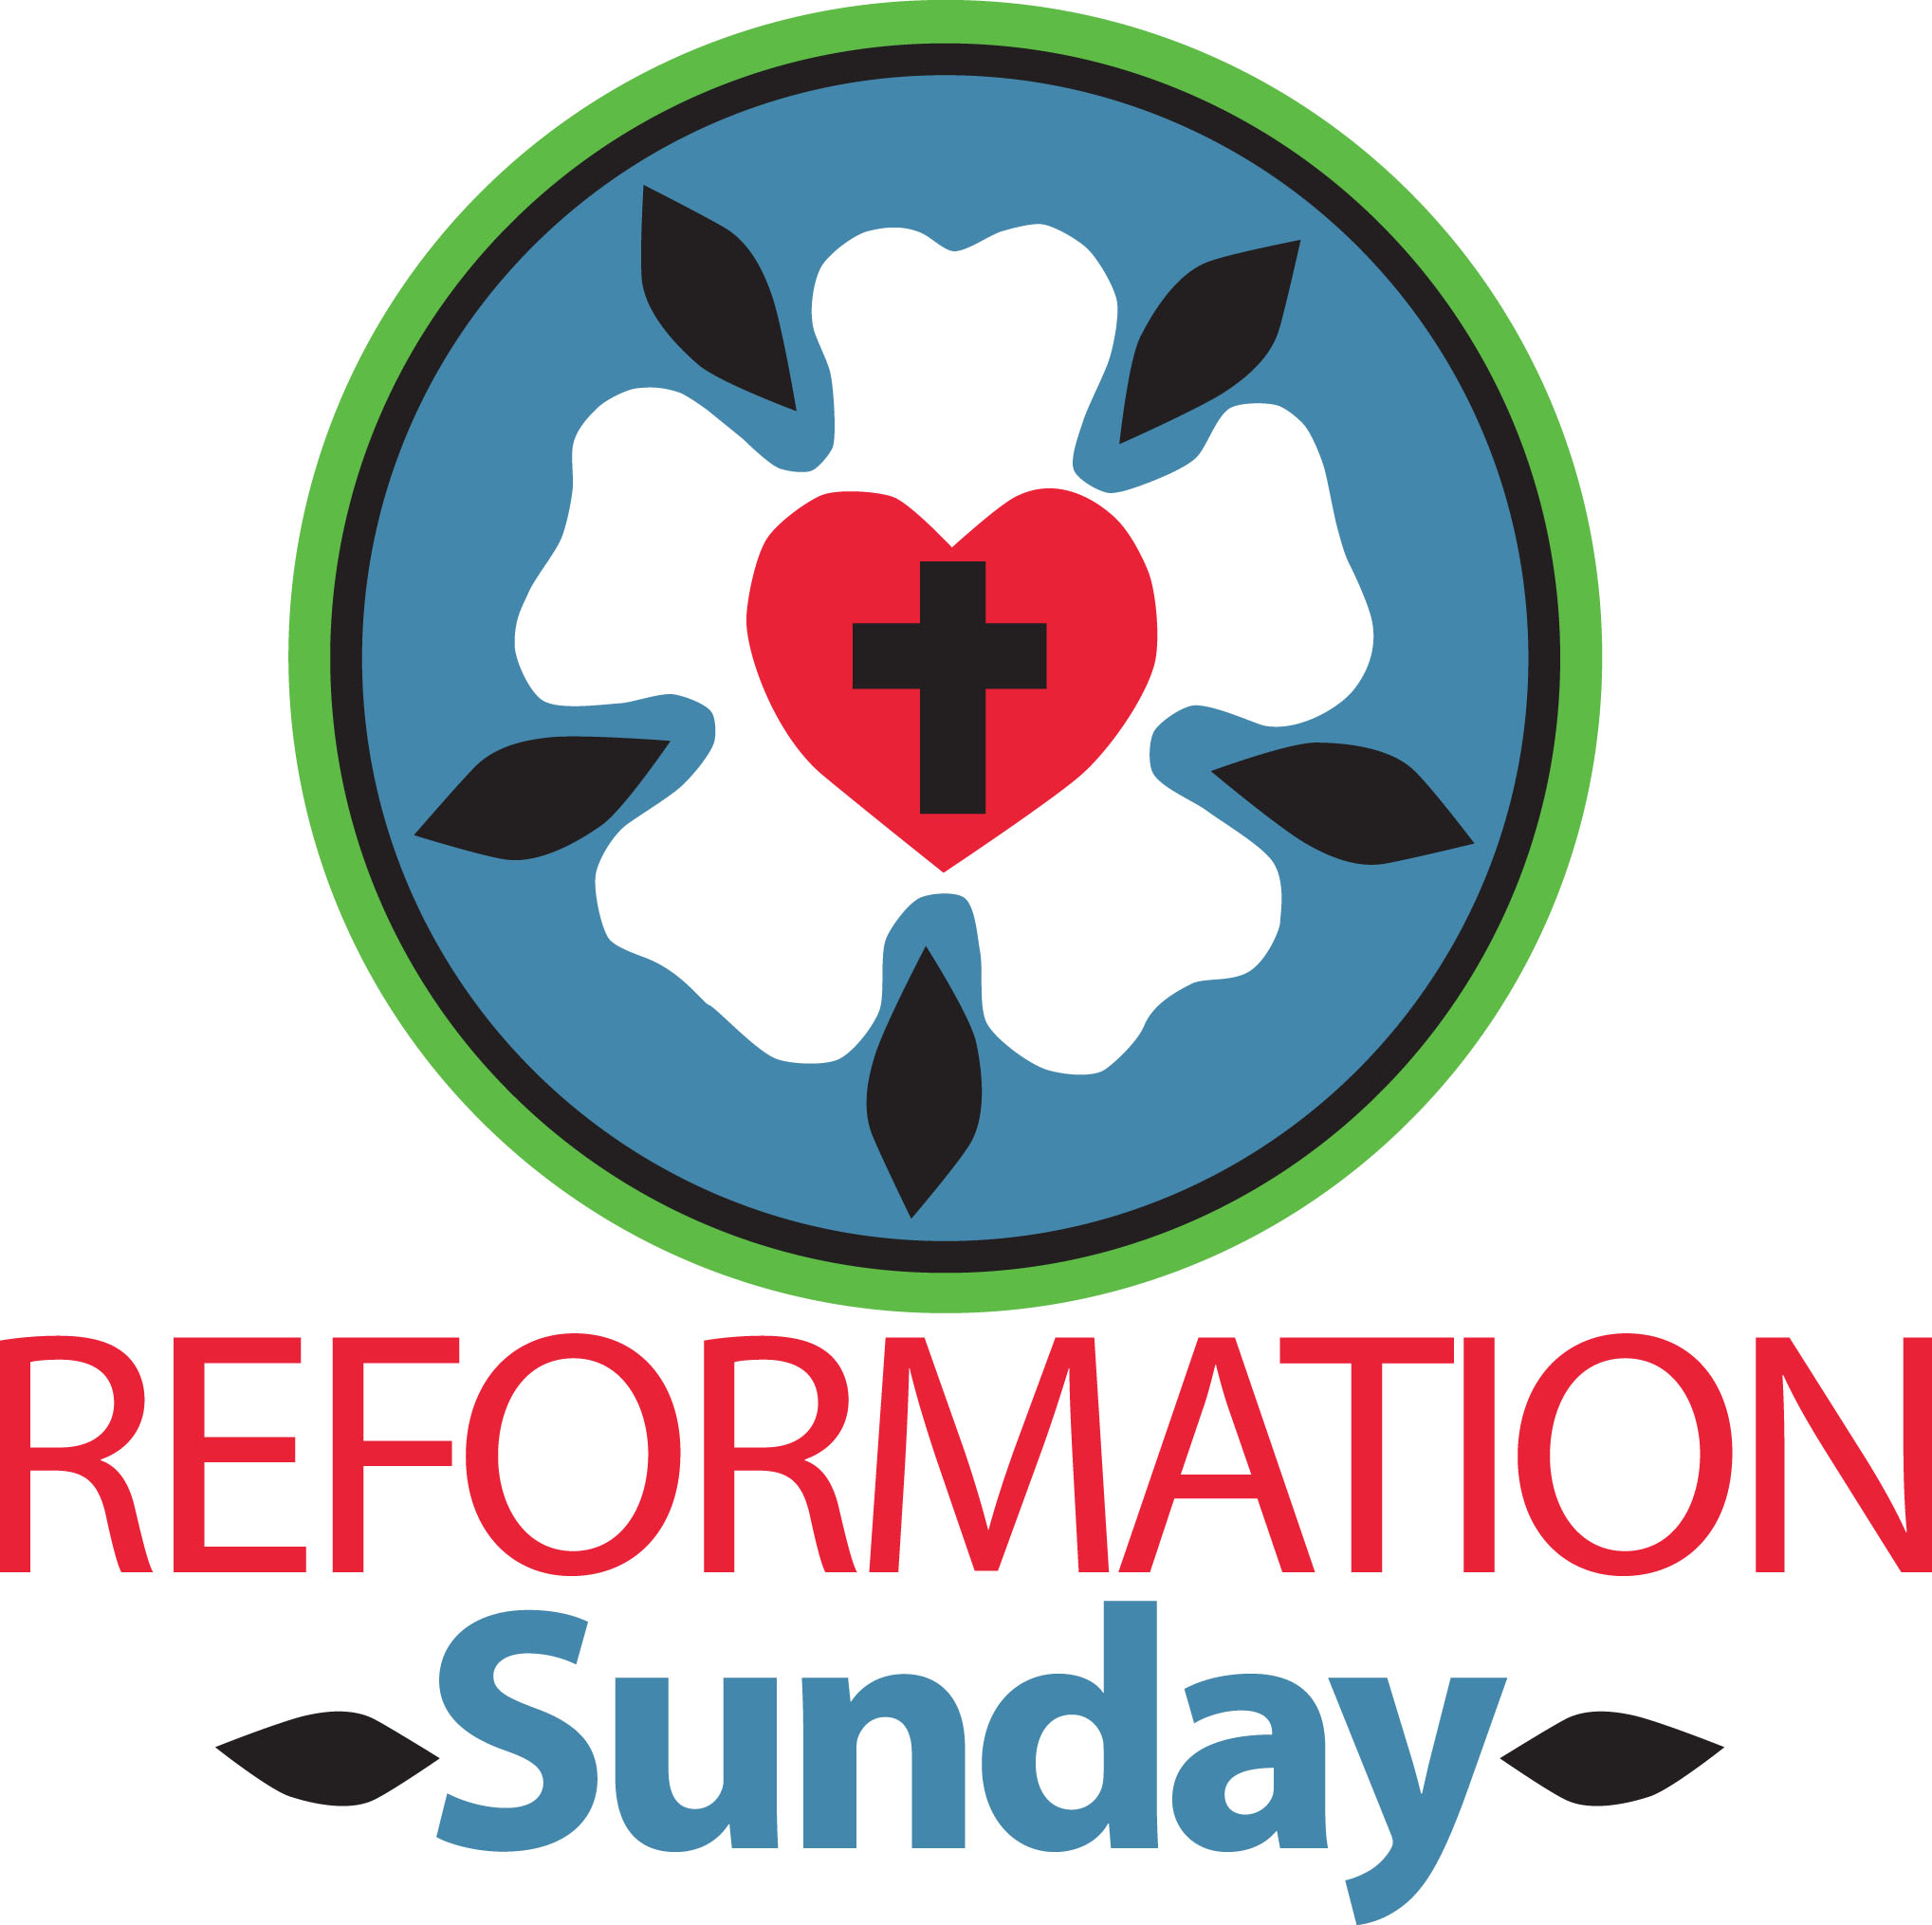 Reformation clipart free download best reformation clipart on 2037x2030 clip art reformation clip art buycottarizona